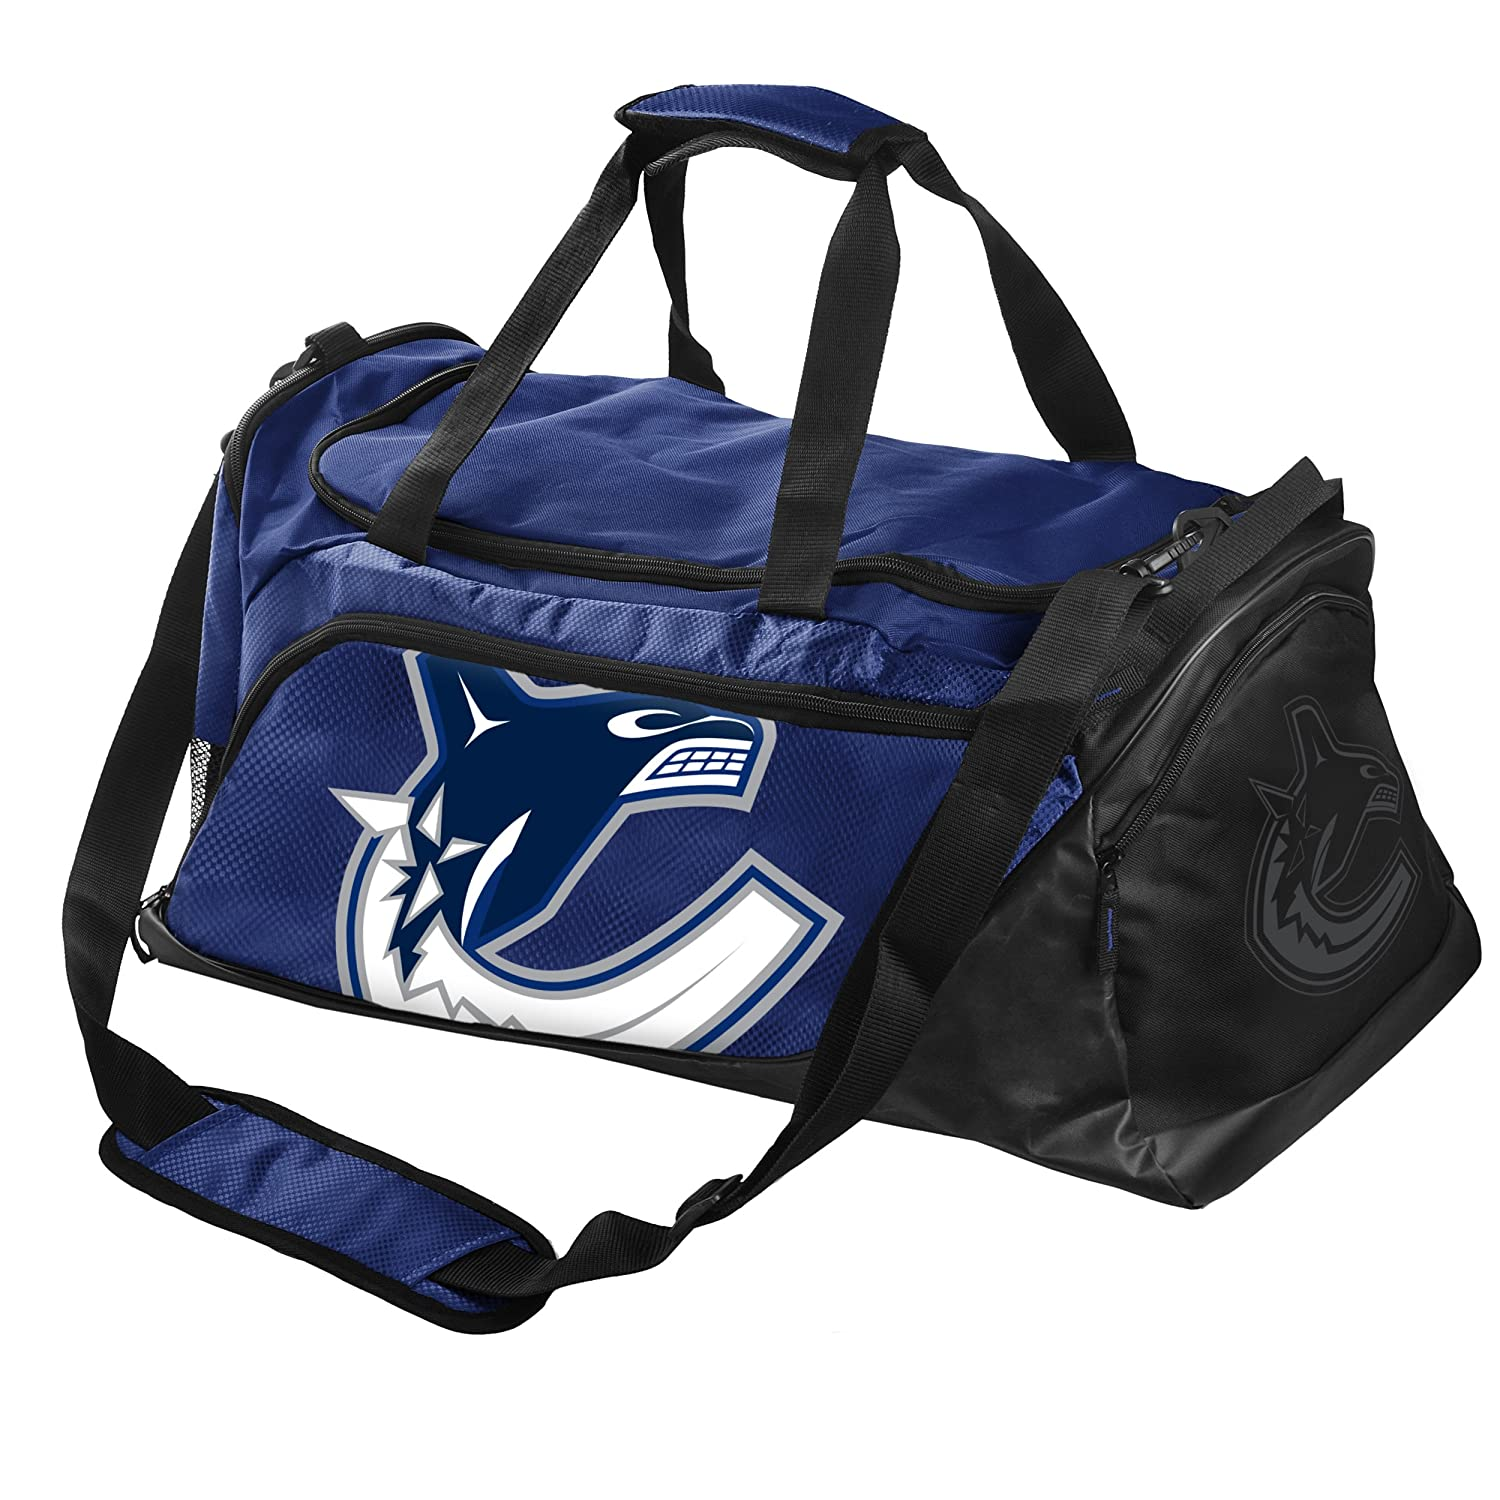 FOCO NHL unisex Locker Room Collection Duffle Bag - Team Beans LLC ... 5f7c7c75b73b4